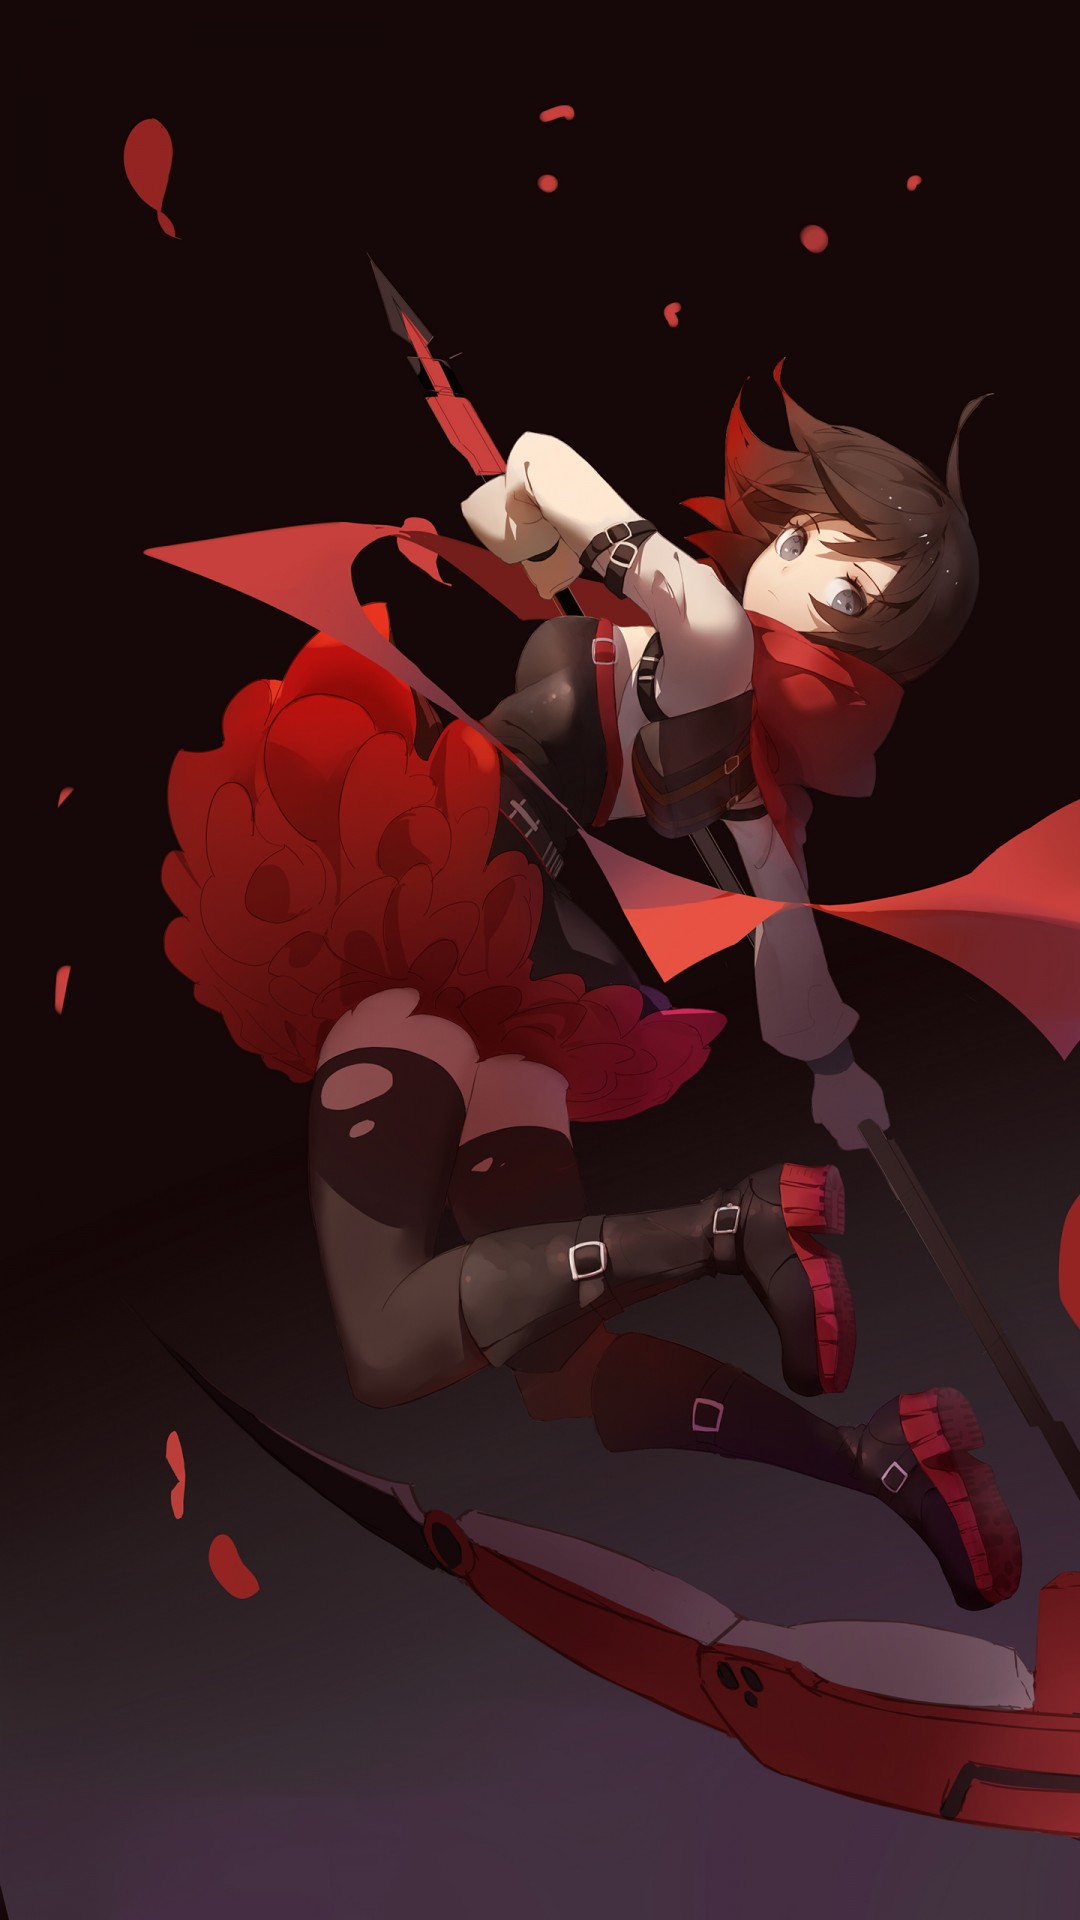 Goku 3d Wallpaper Download Rwby Ruby Rose Wallpapers Hd Wallpapers Id 26013